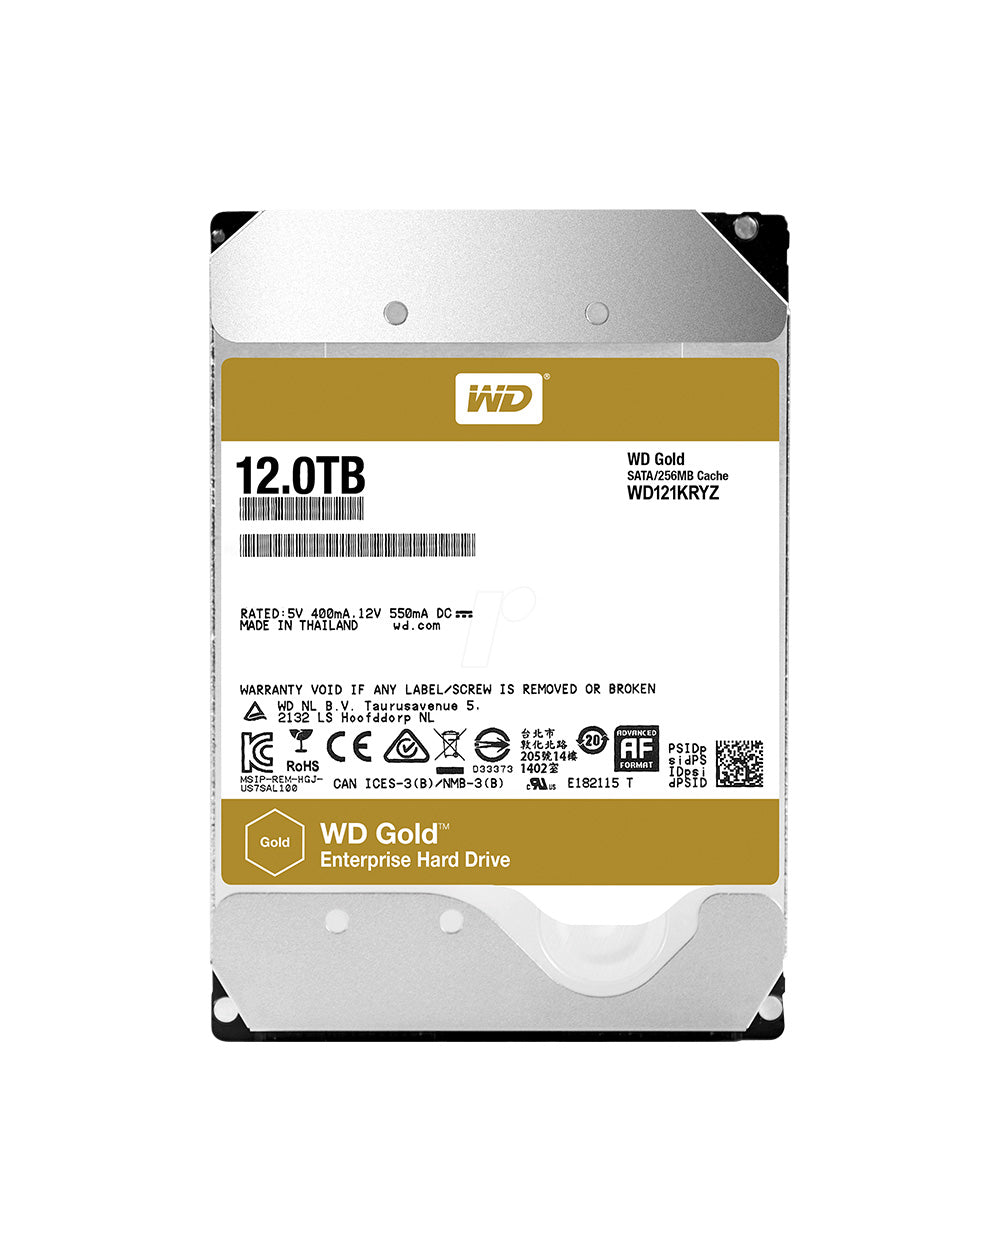 12TB - WD Gold Enterprise - WD121KRYZ